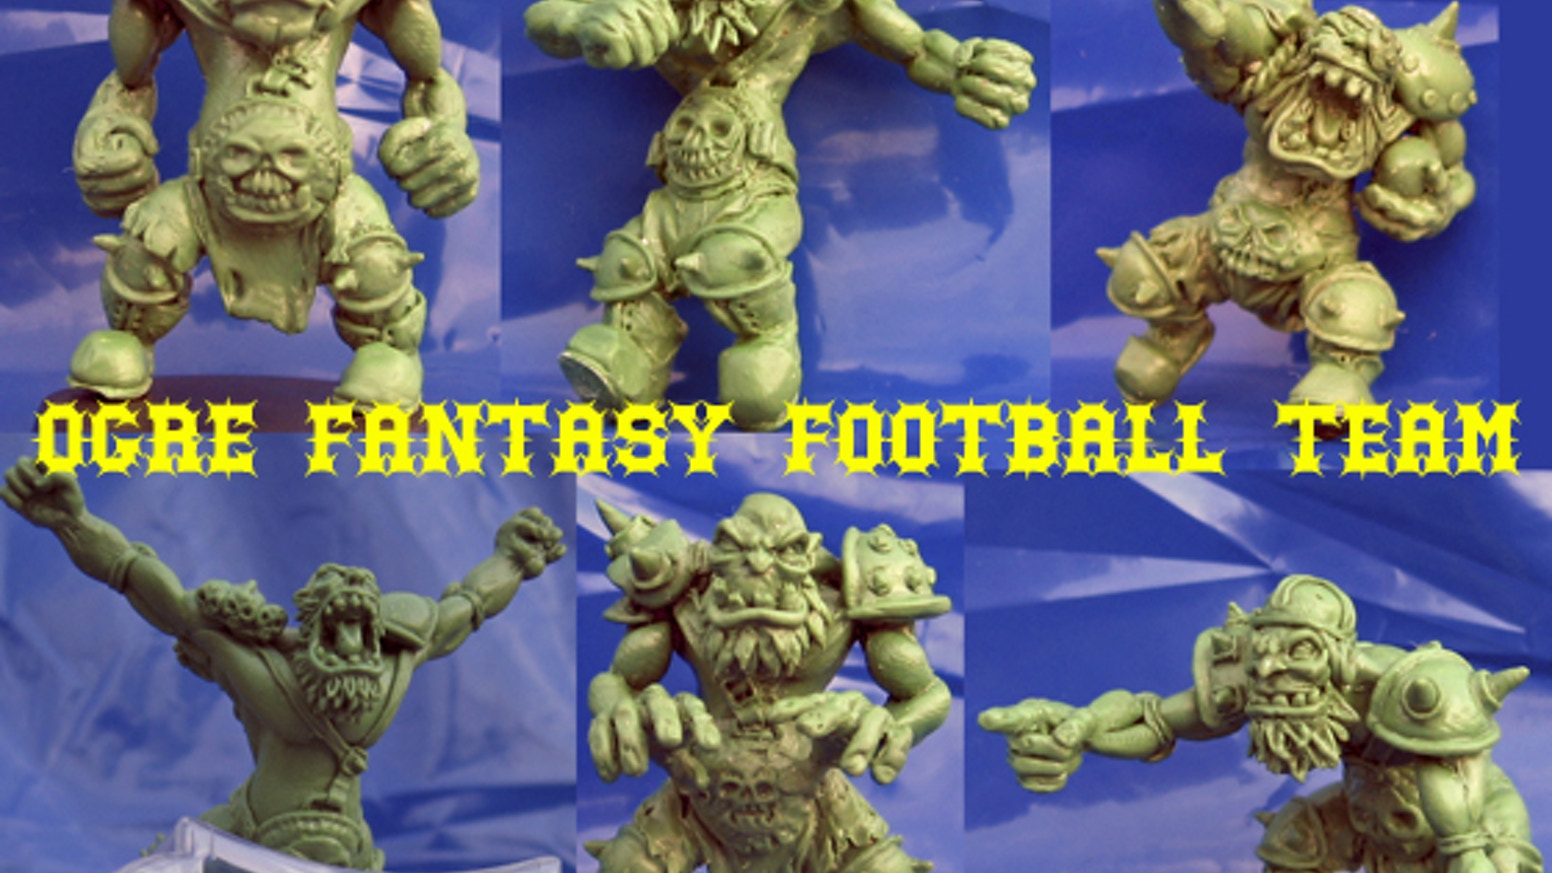 Brand new old school sized Ogres and Imps for your fantasy football board games.